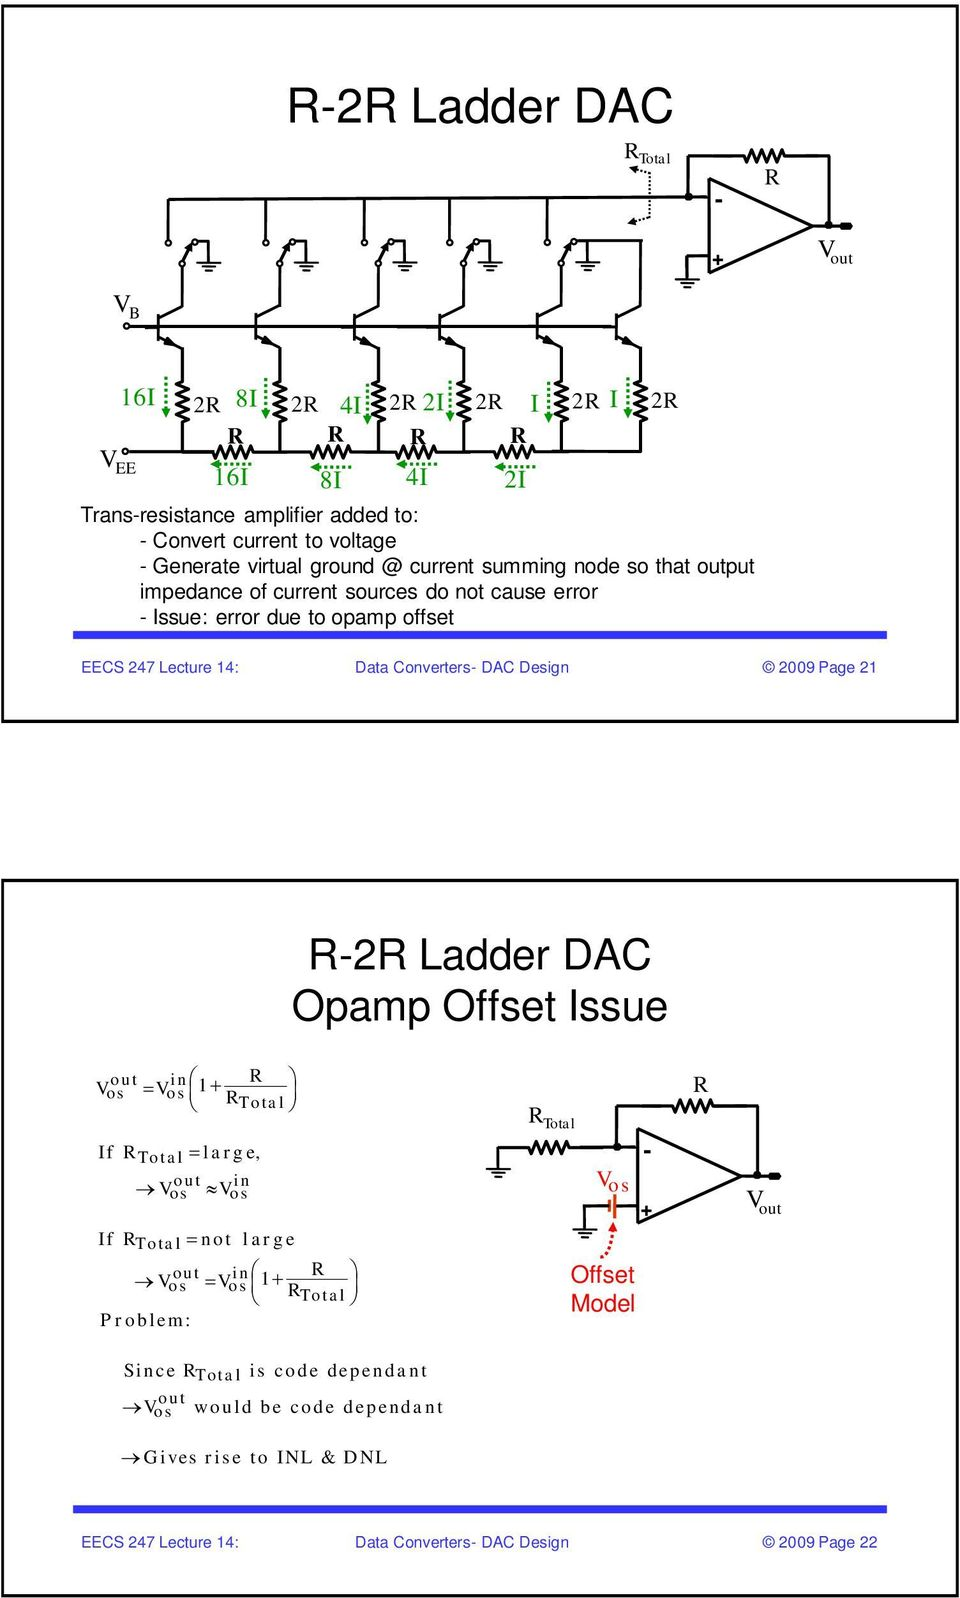 Ee247 Lecture 14 Eecs 247 Data Converters Dac Design Figure Sb1 Standard Ttl Inverter Circuit 9 Page 1 R Ladder Opamp Offset Issue Out In Os V